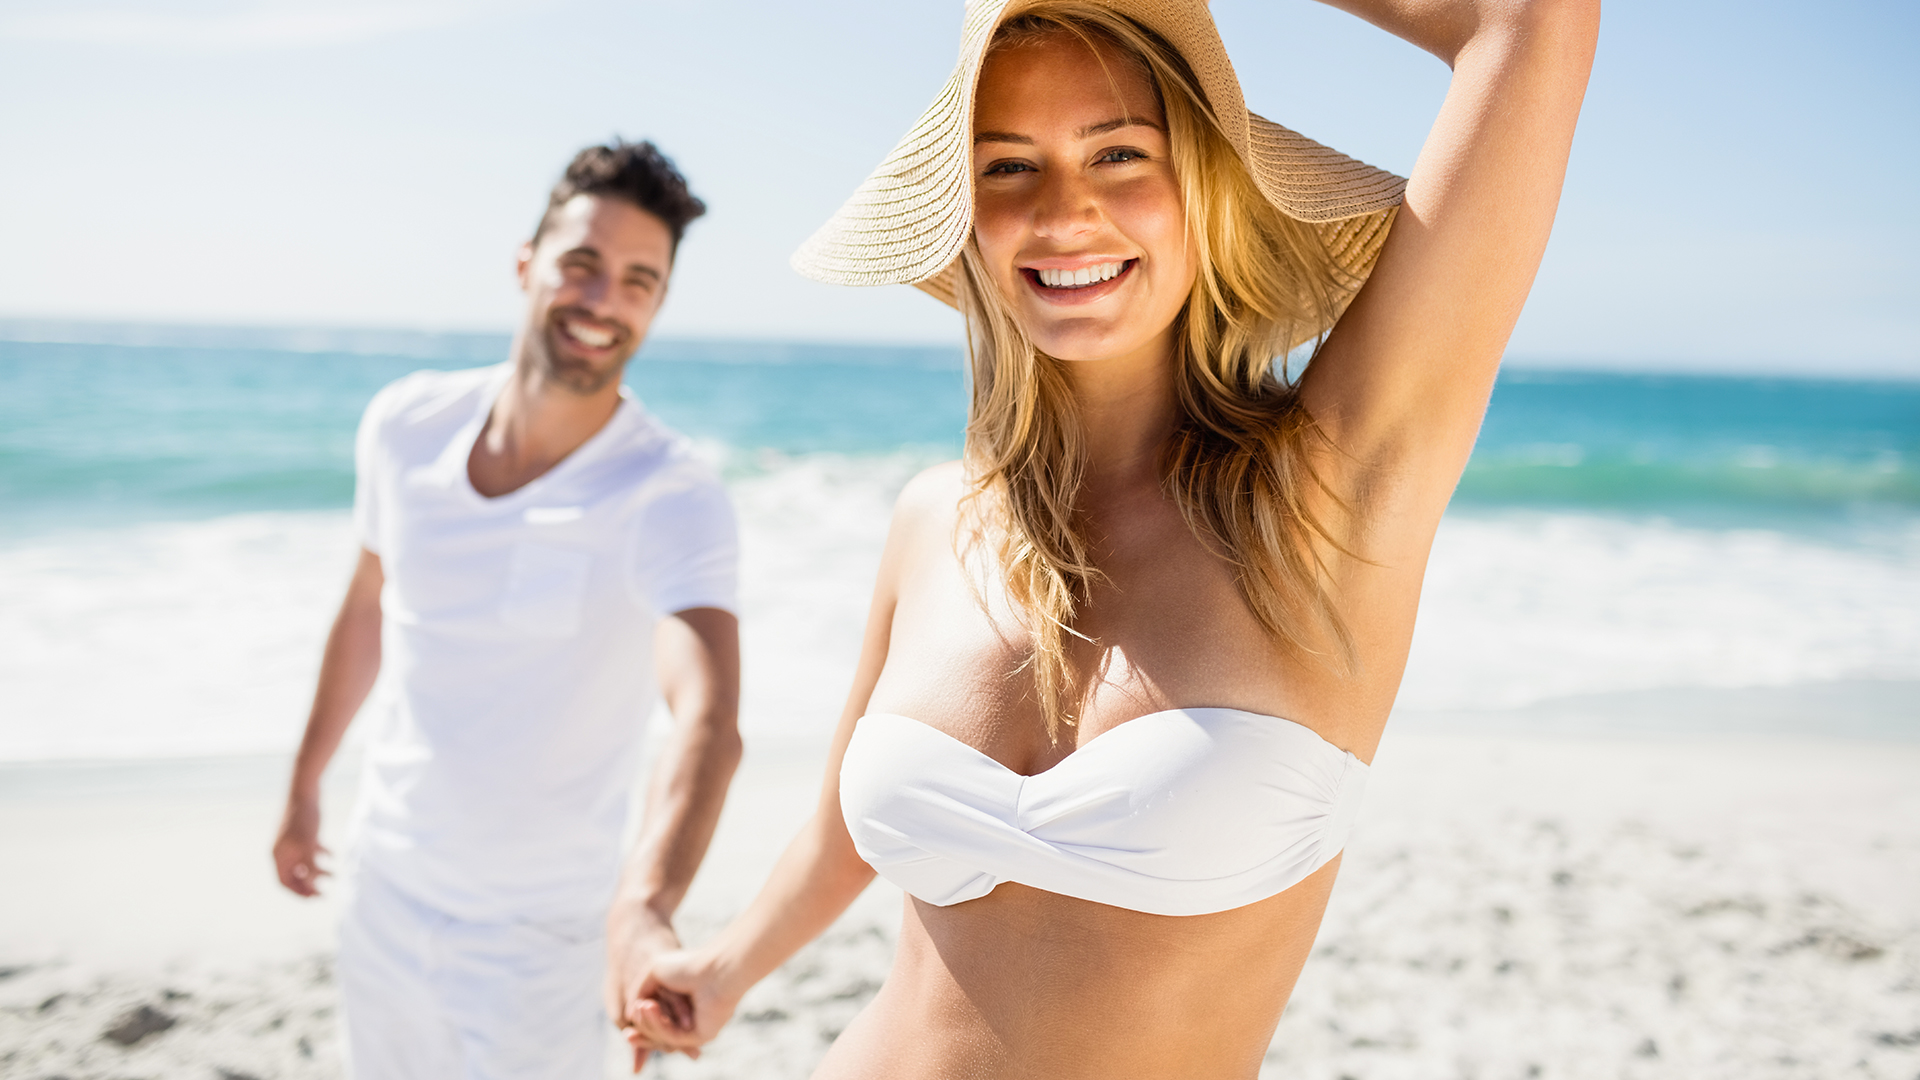 Best waxing services and products in South Carolina and North Carolina